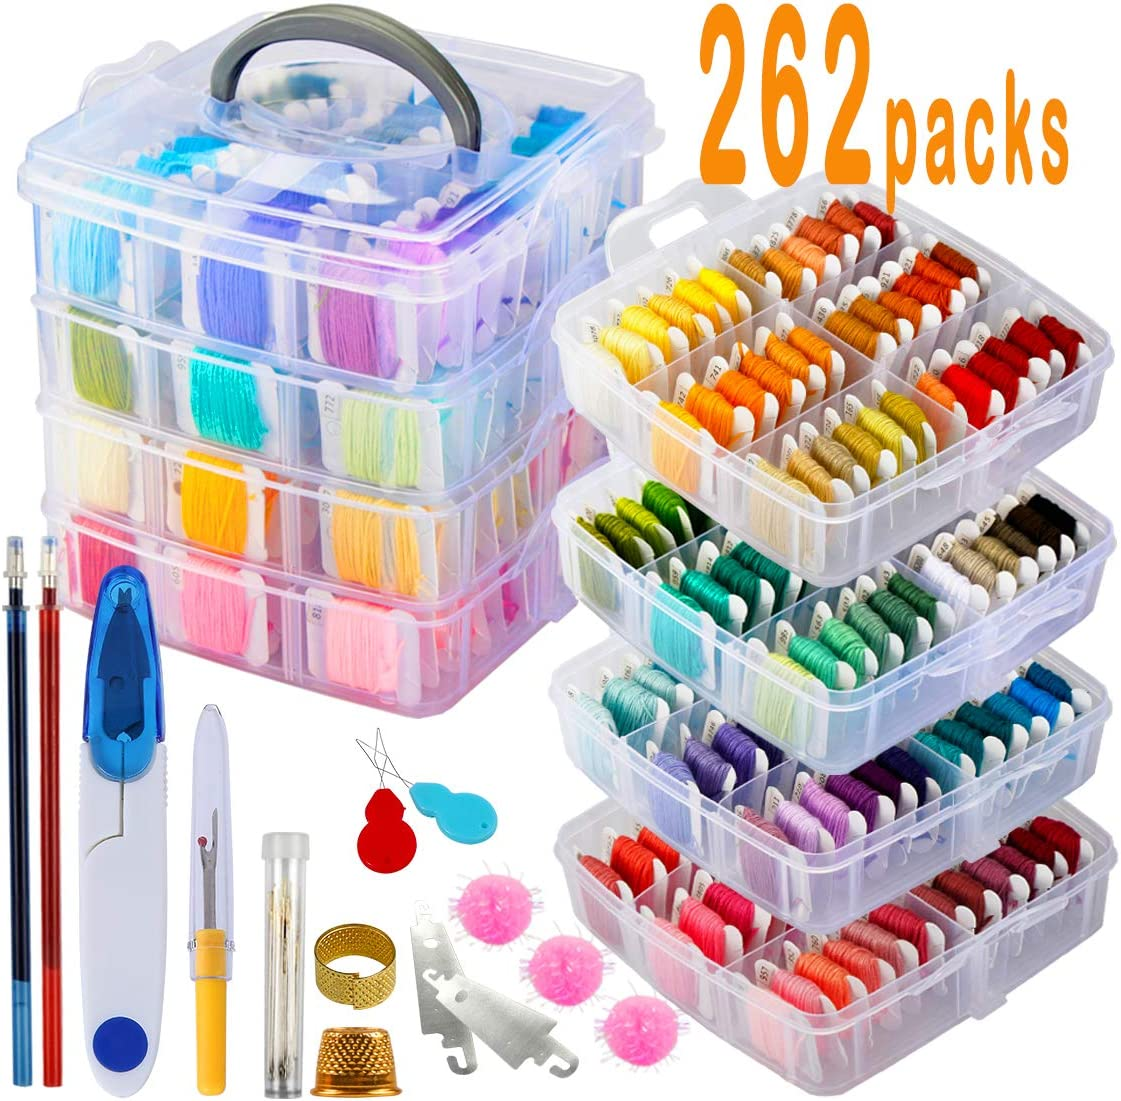 Best utility: 238 Pack Embroidery Thread Floss Set